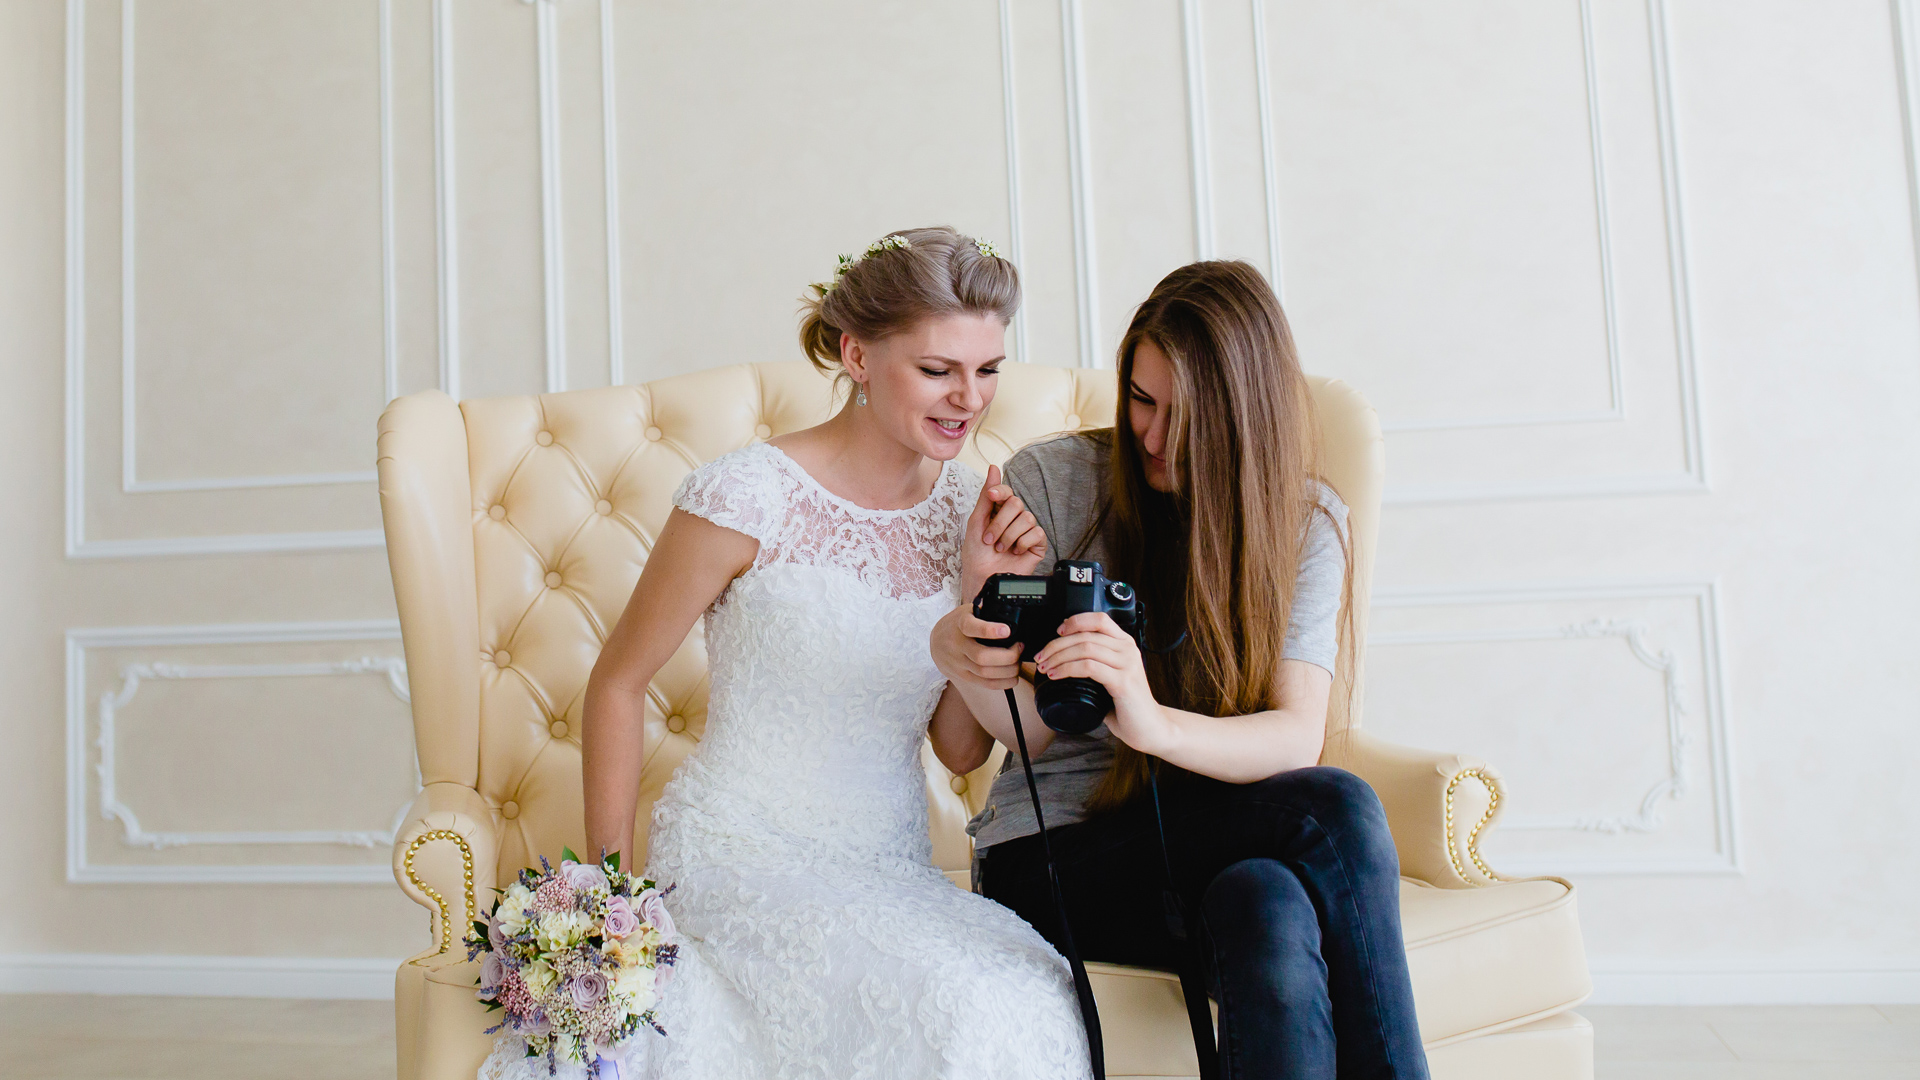 Photographer with long hair shows the young sexy bride had just taken photos.